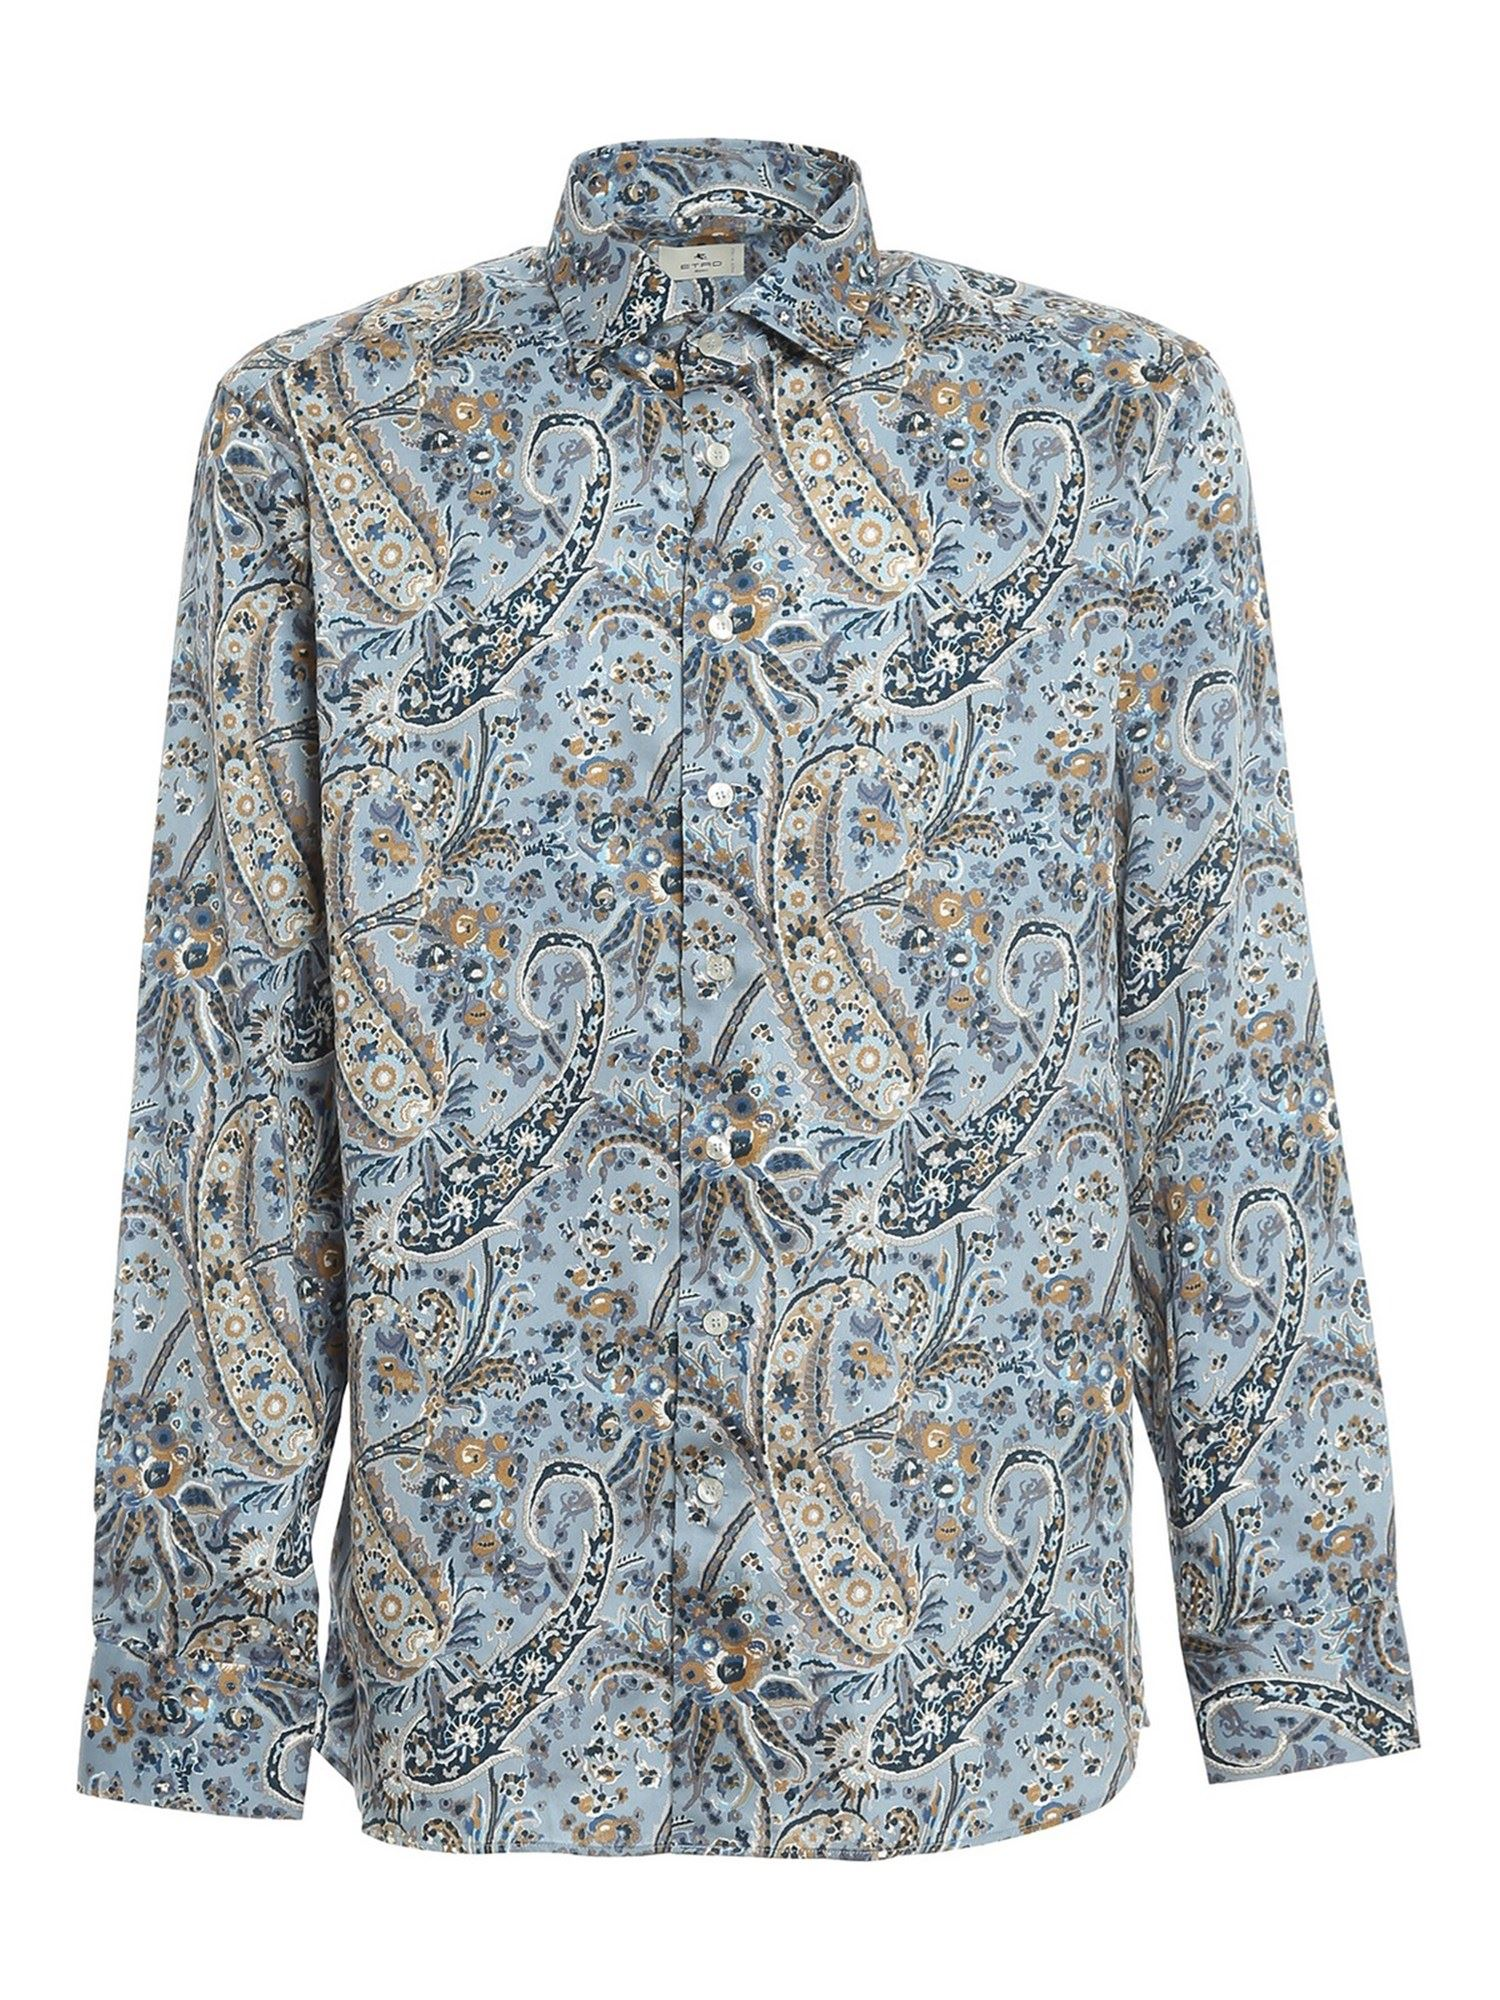 Etro PAISLY COTTON SHIRT IN LIGHT BLUE